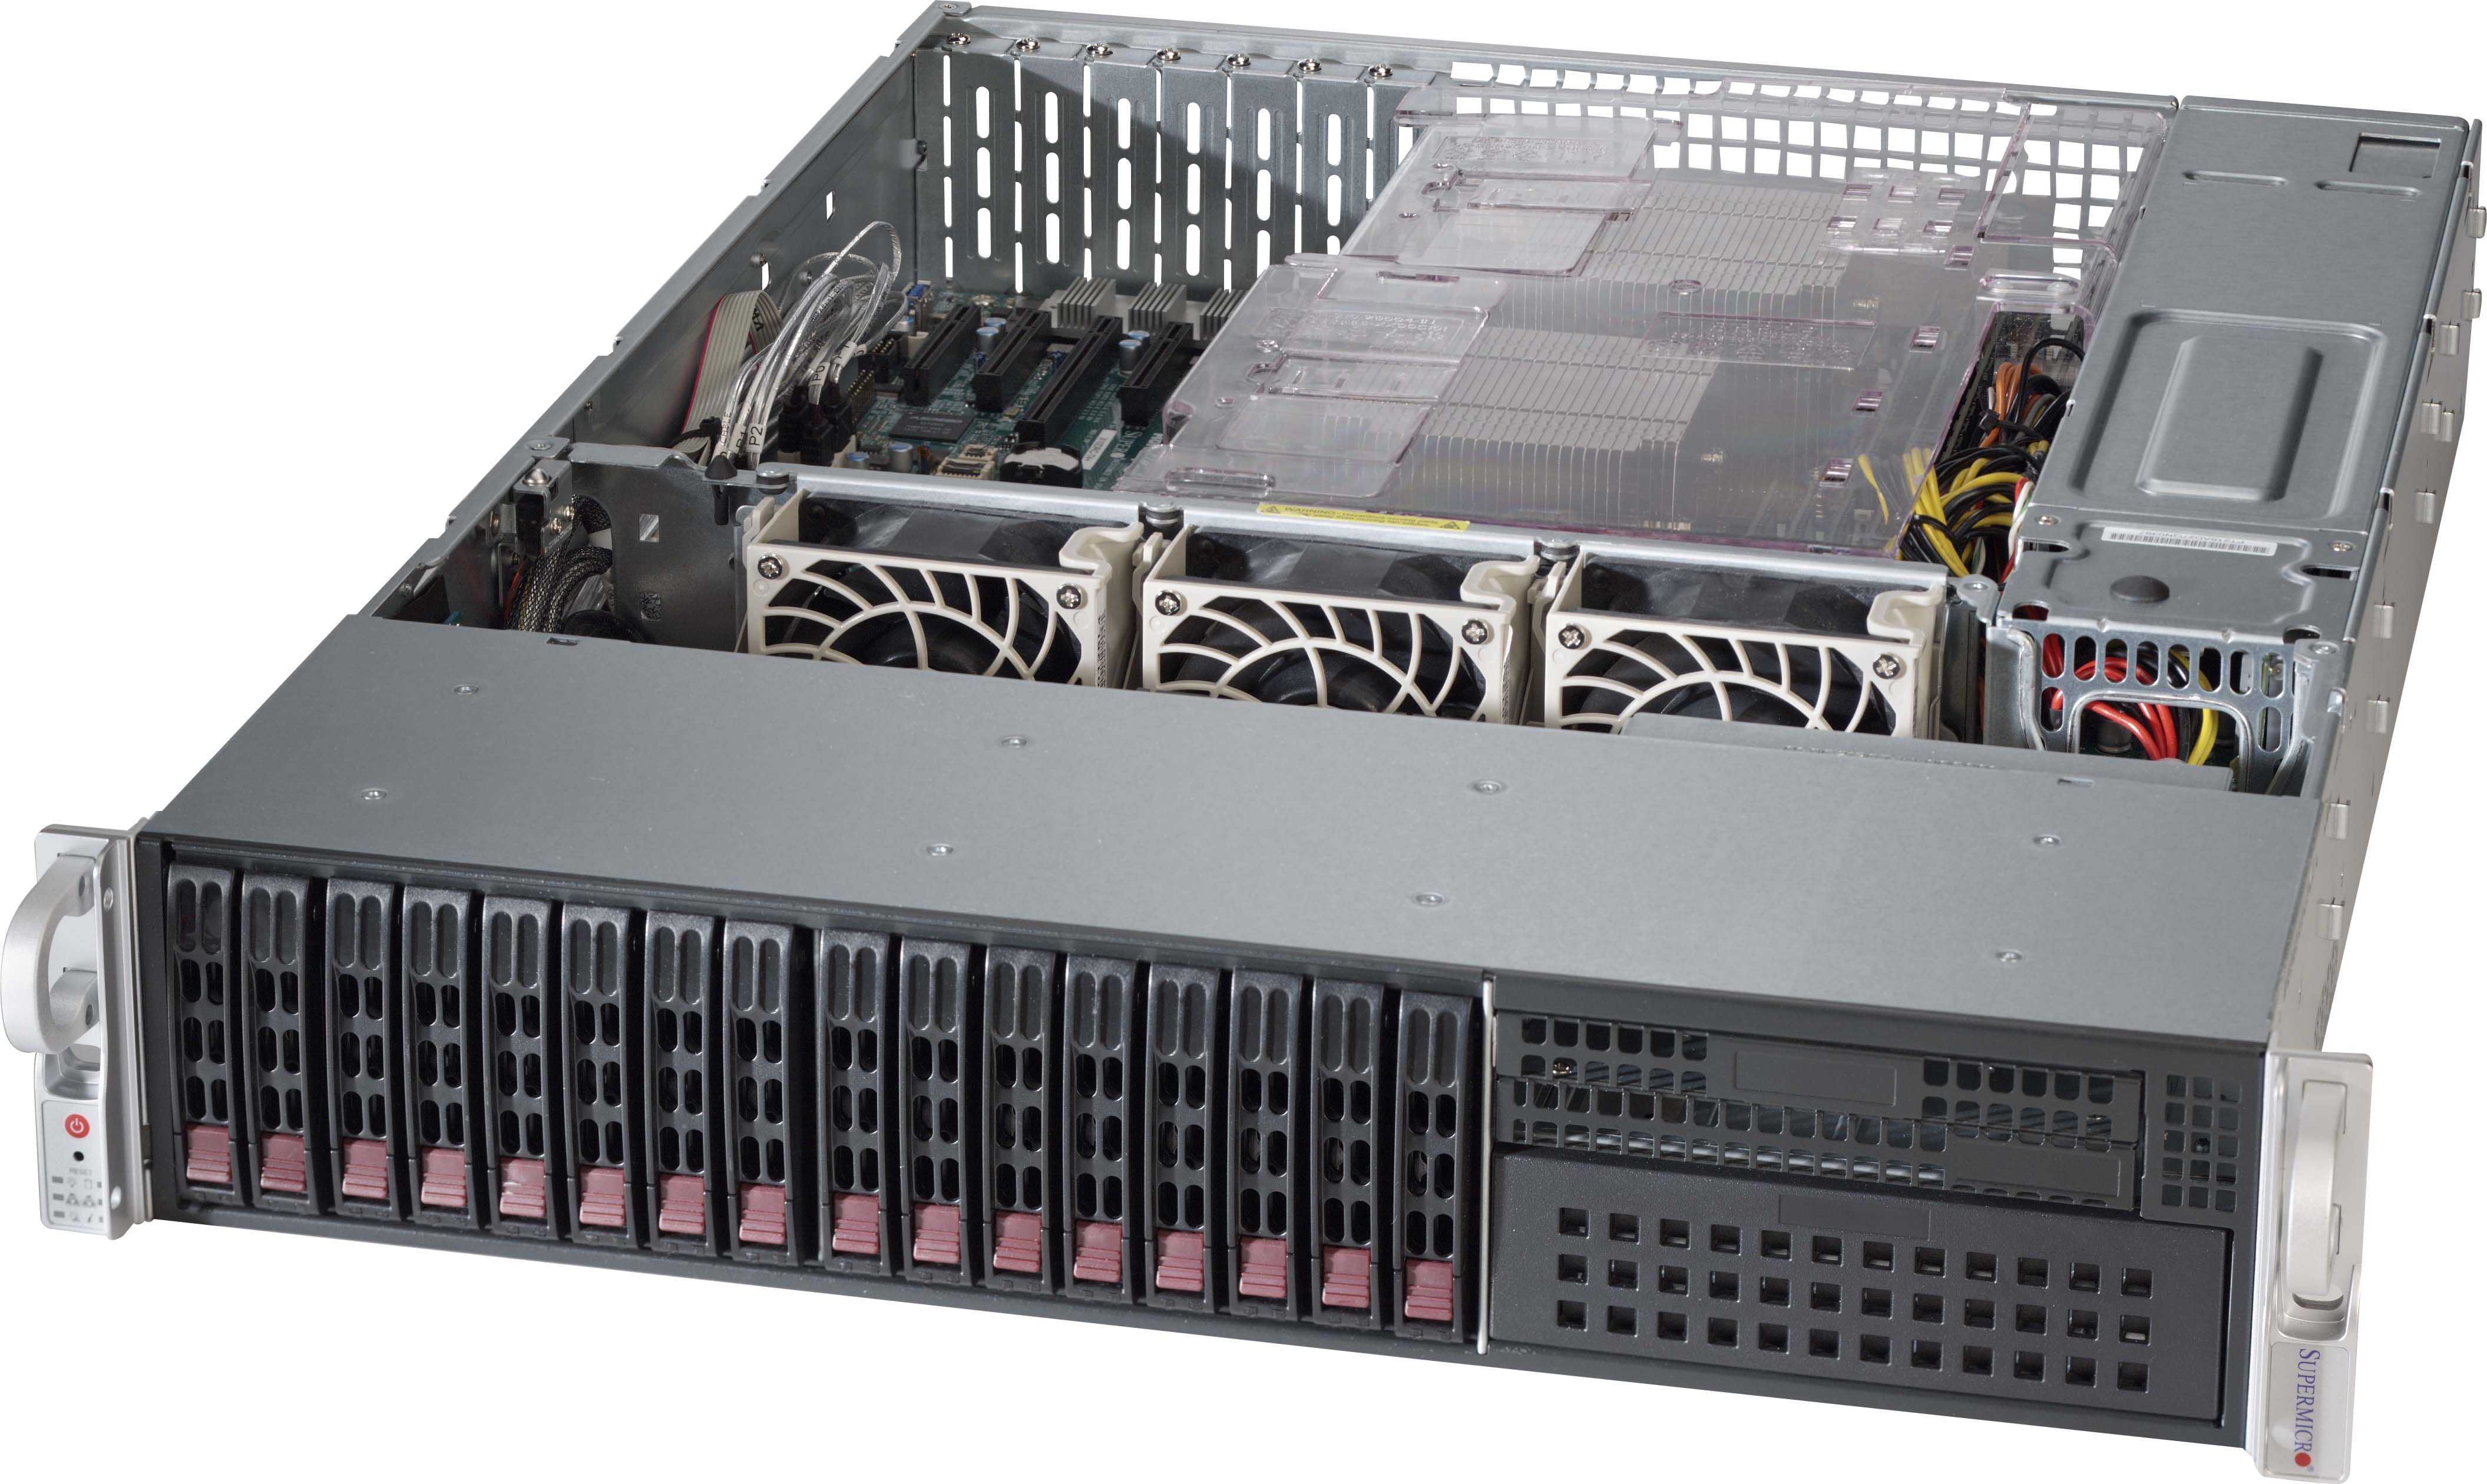 Sc213ac R920lpb 2u Chassis Products Super Micro